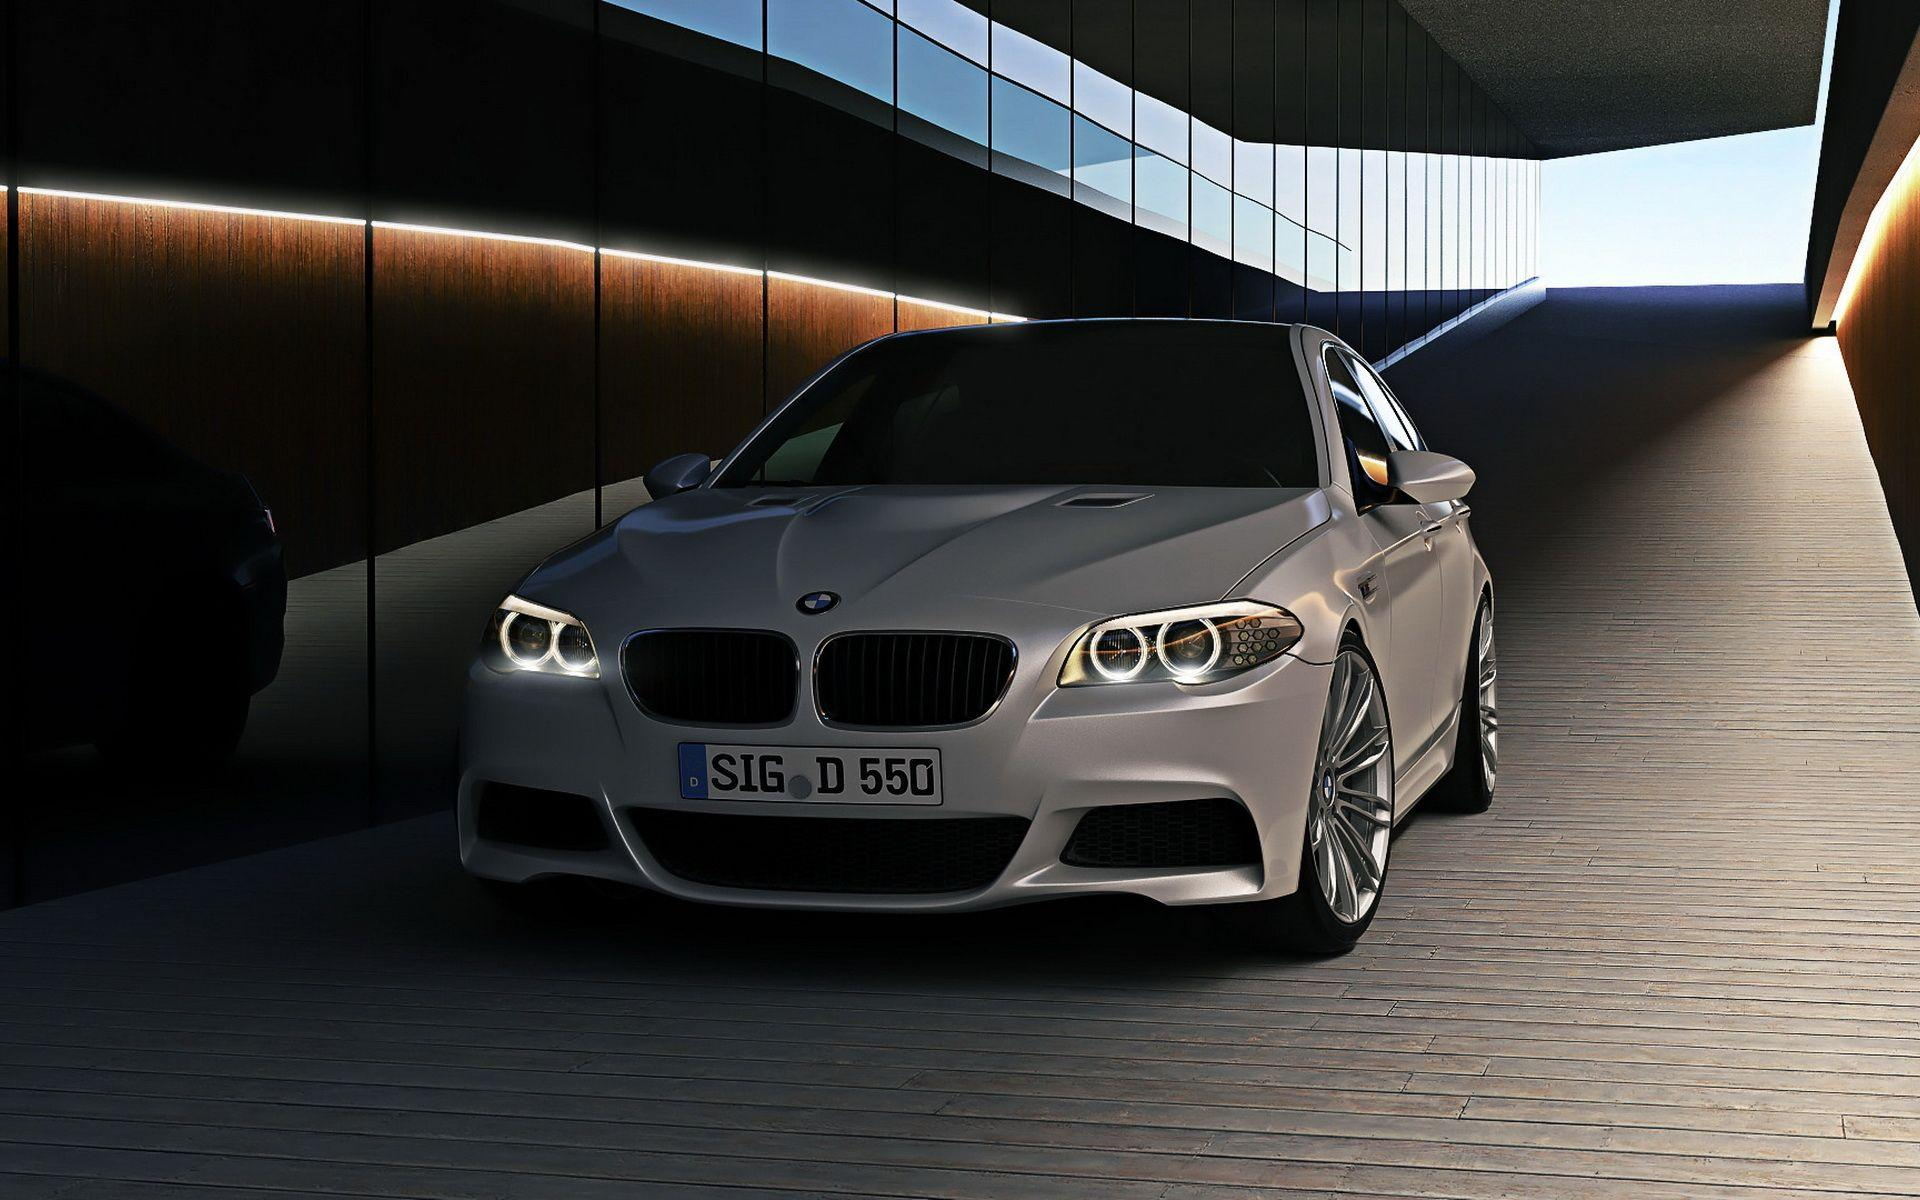 BMW M5 F10 wallpapers and images - wallpapers, pictures, photos